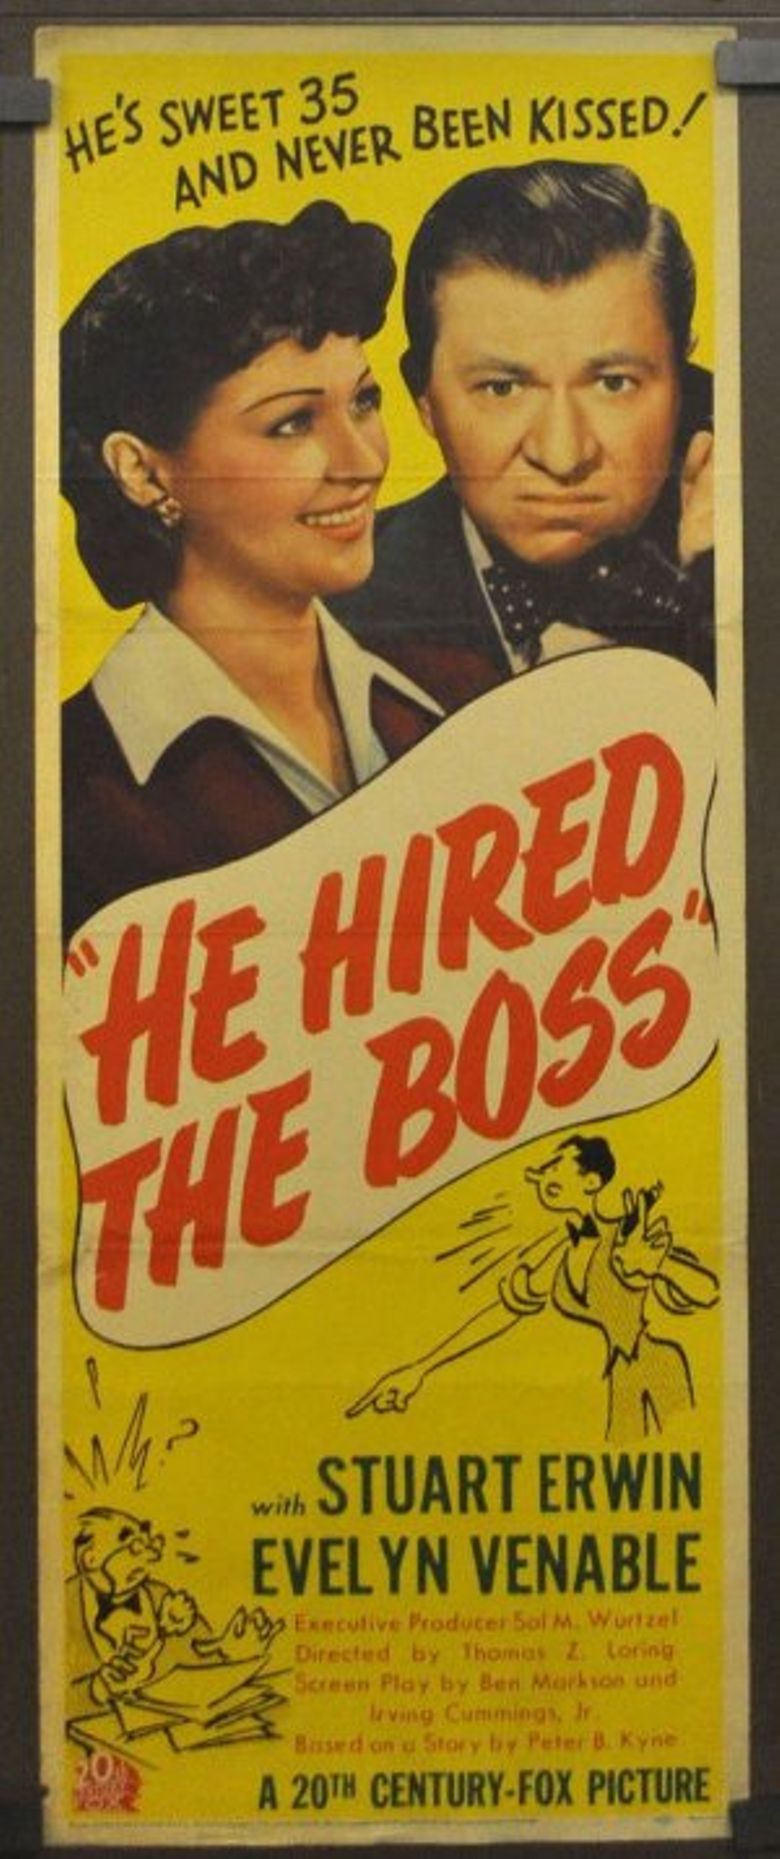 He Hired the Boss Poster